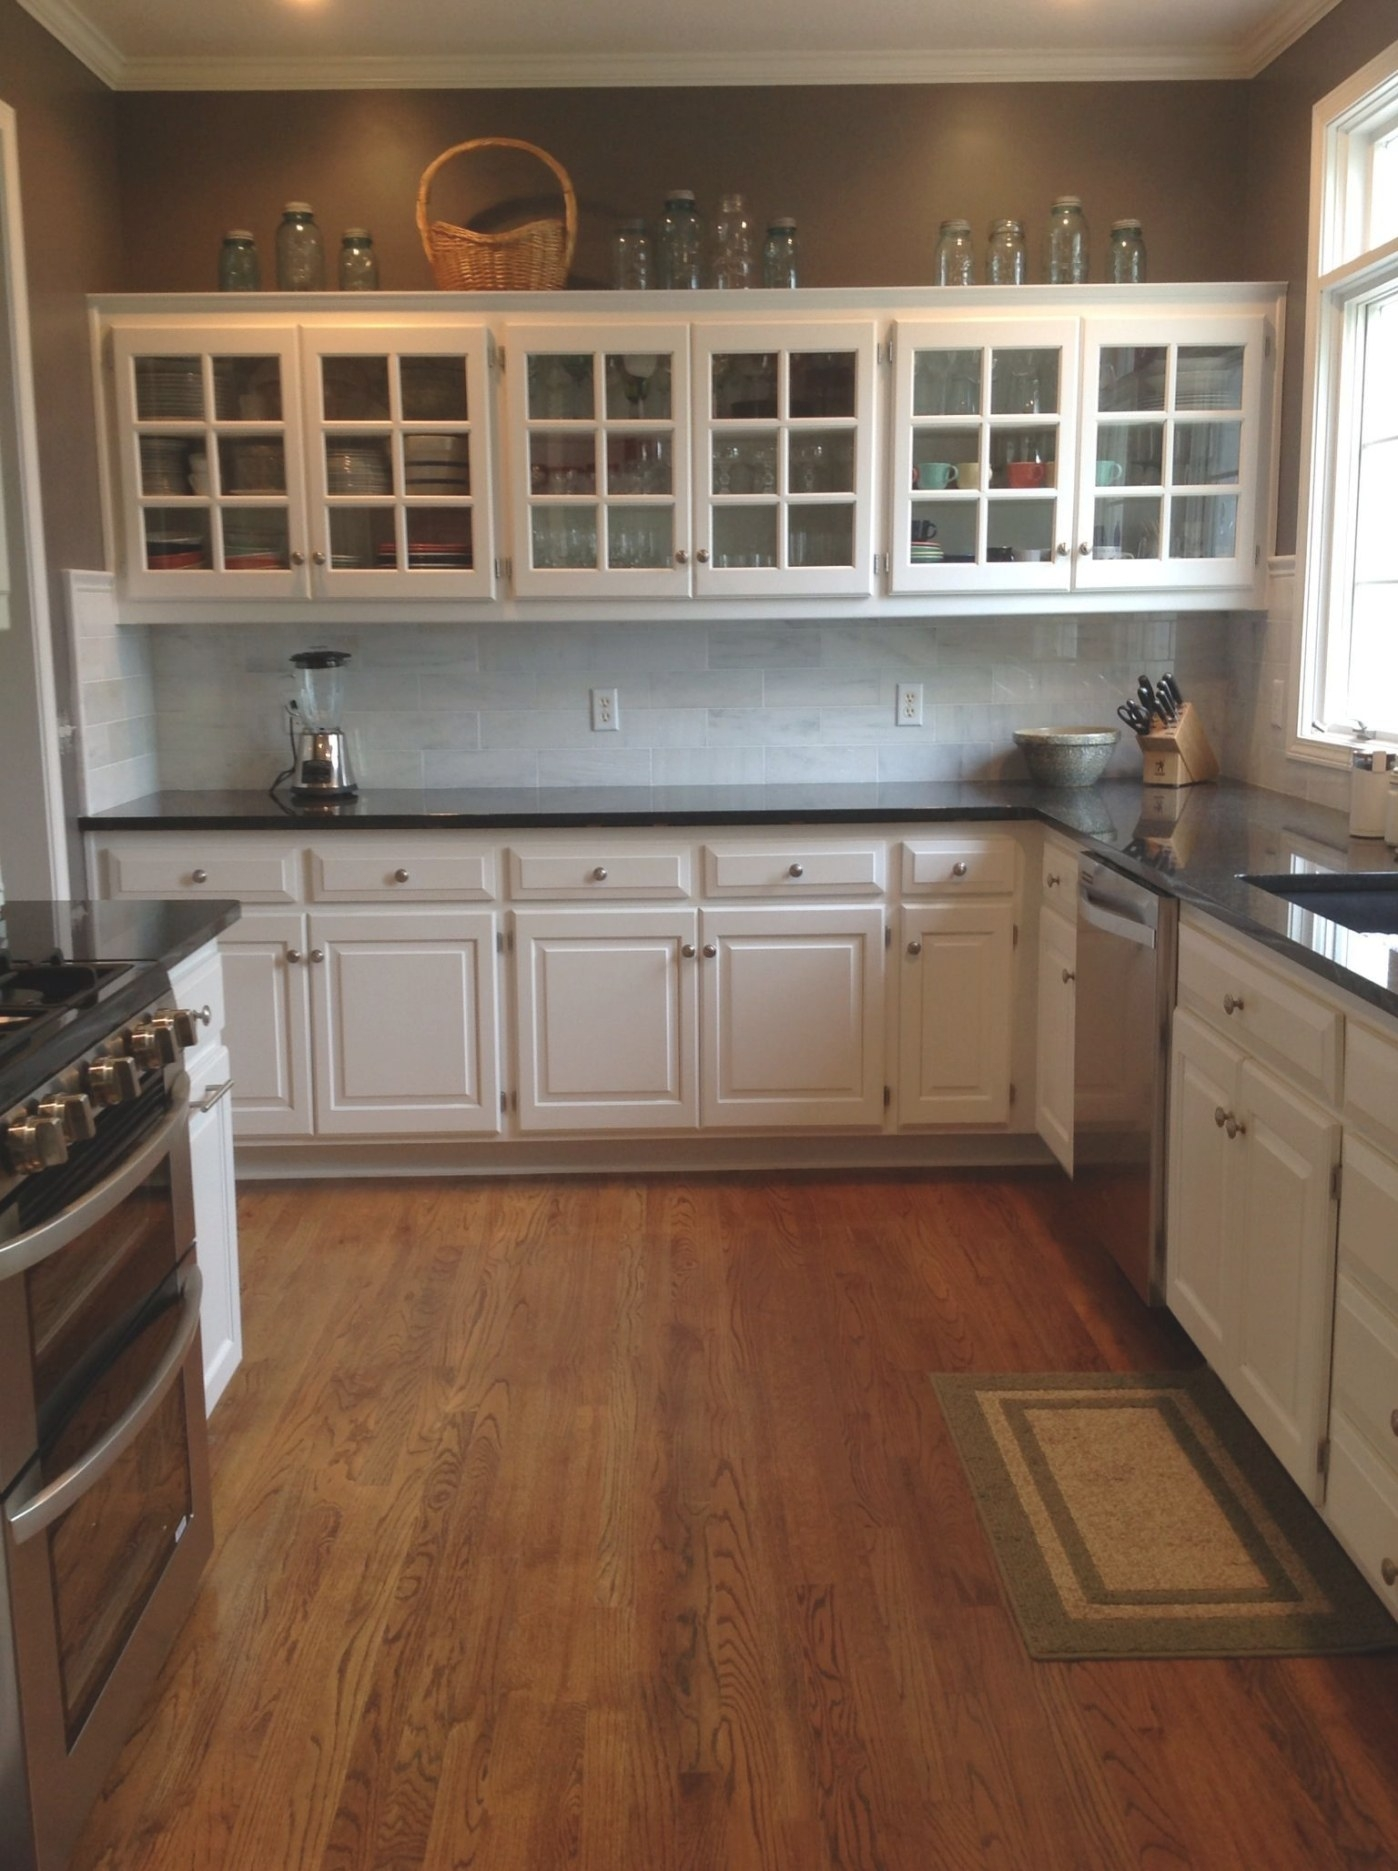 My Kitchen After. Kept The White Cabinets. Added Black throughout White And Stainless Steel Kitchen